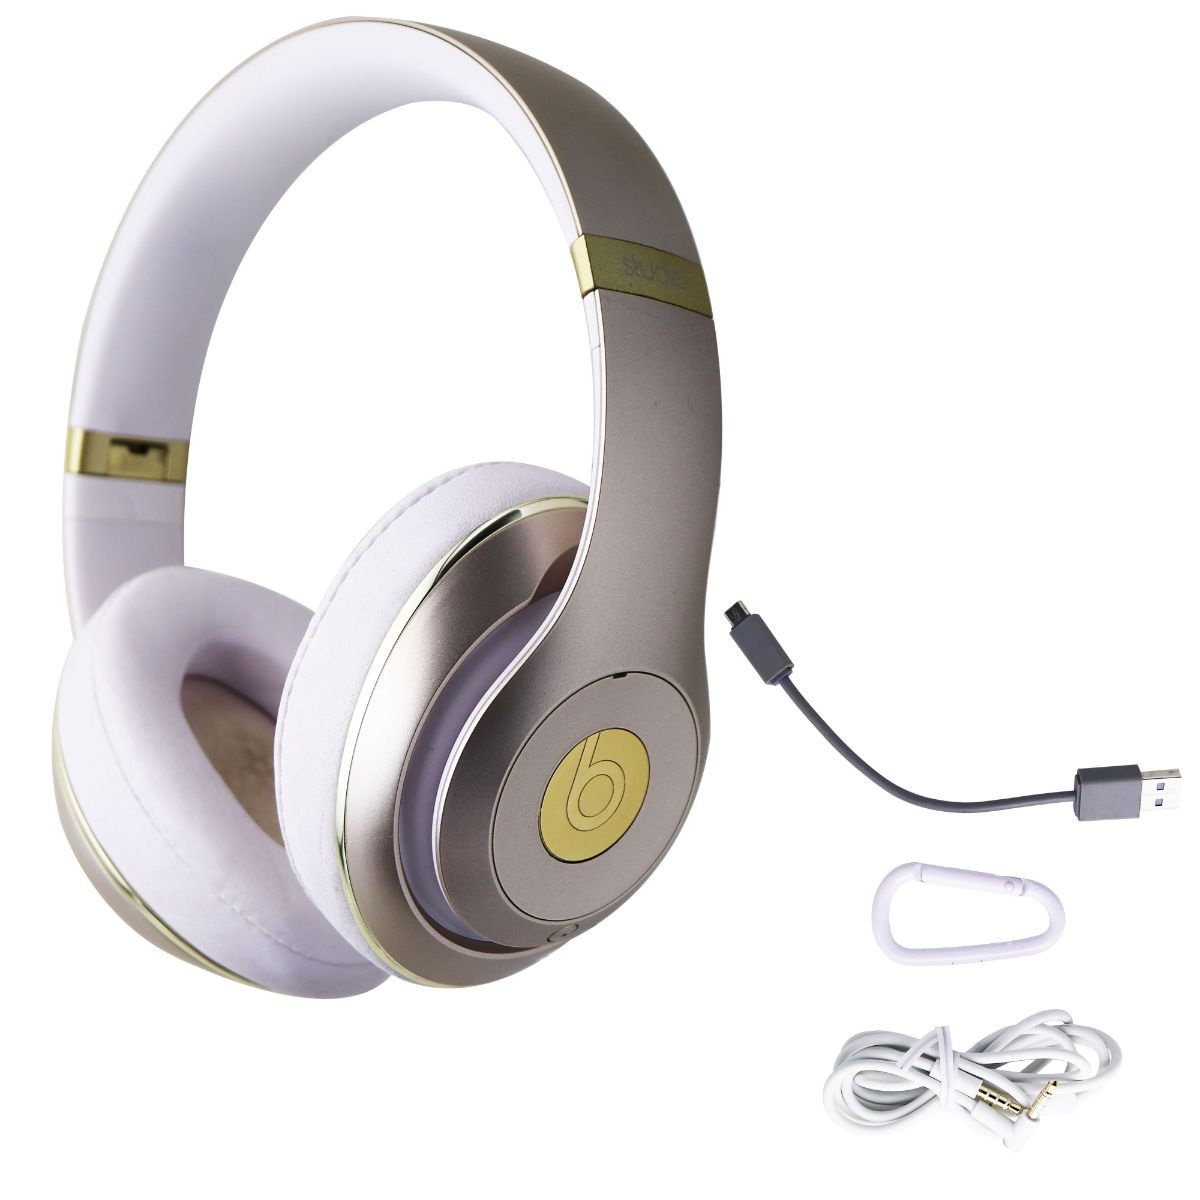 Beats by Dr. Dre Studio 2 Wireless Over-Ear Headphones with Built-in Mic - Gold